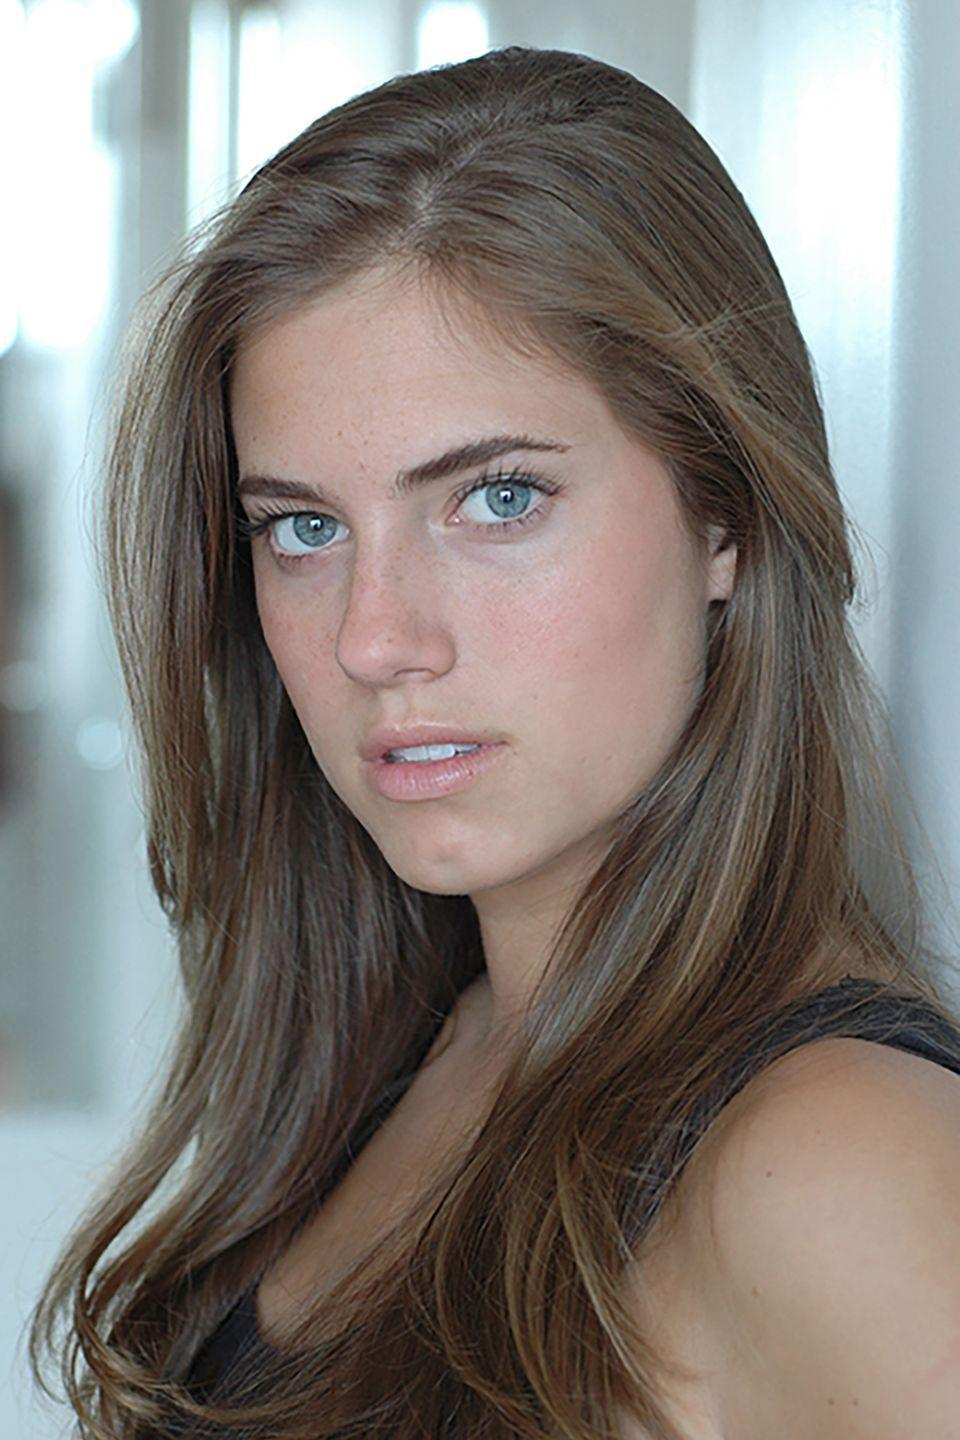 <p>Allison Williams may be the daughter of newscaster Brian Williams, but she still had to pay her dues in Hollywood. After growing up in Connecticut and working with an improv troupe at Yale University, Williams was cast in her breakout role as Marnie Michaels in HBO's <em>Girls</em> in 2010.</p>